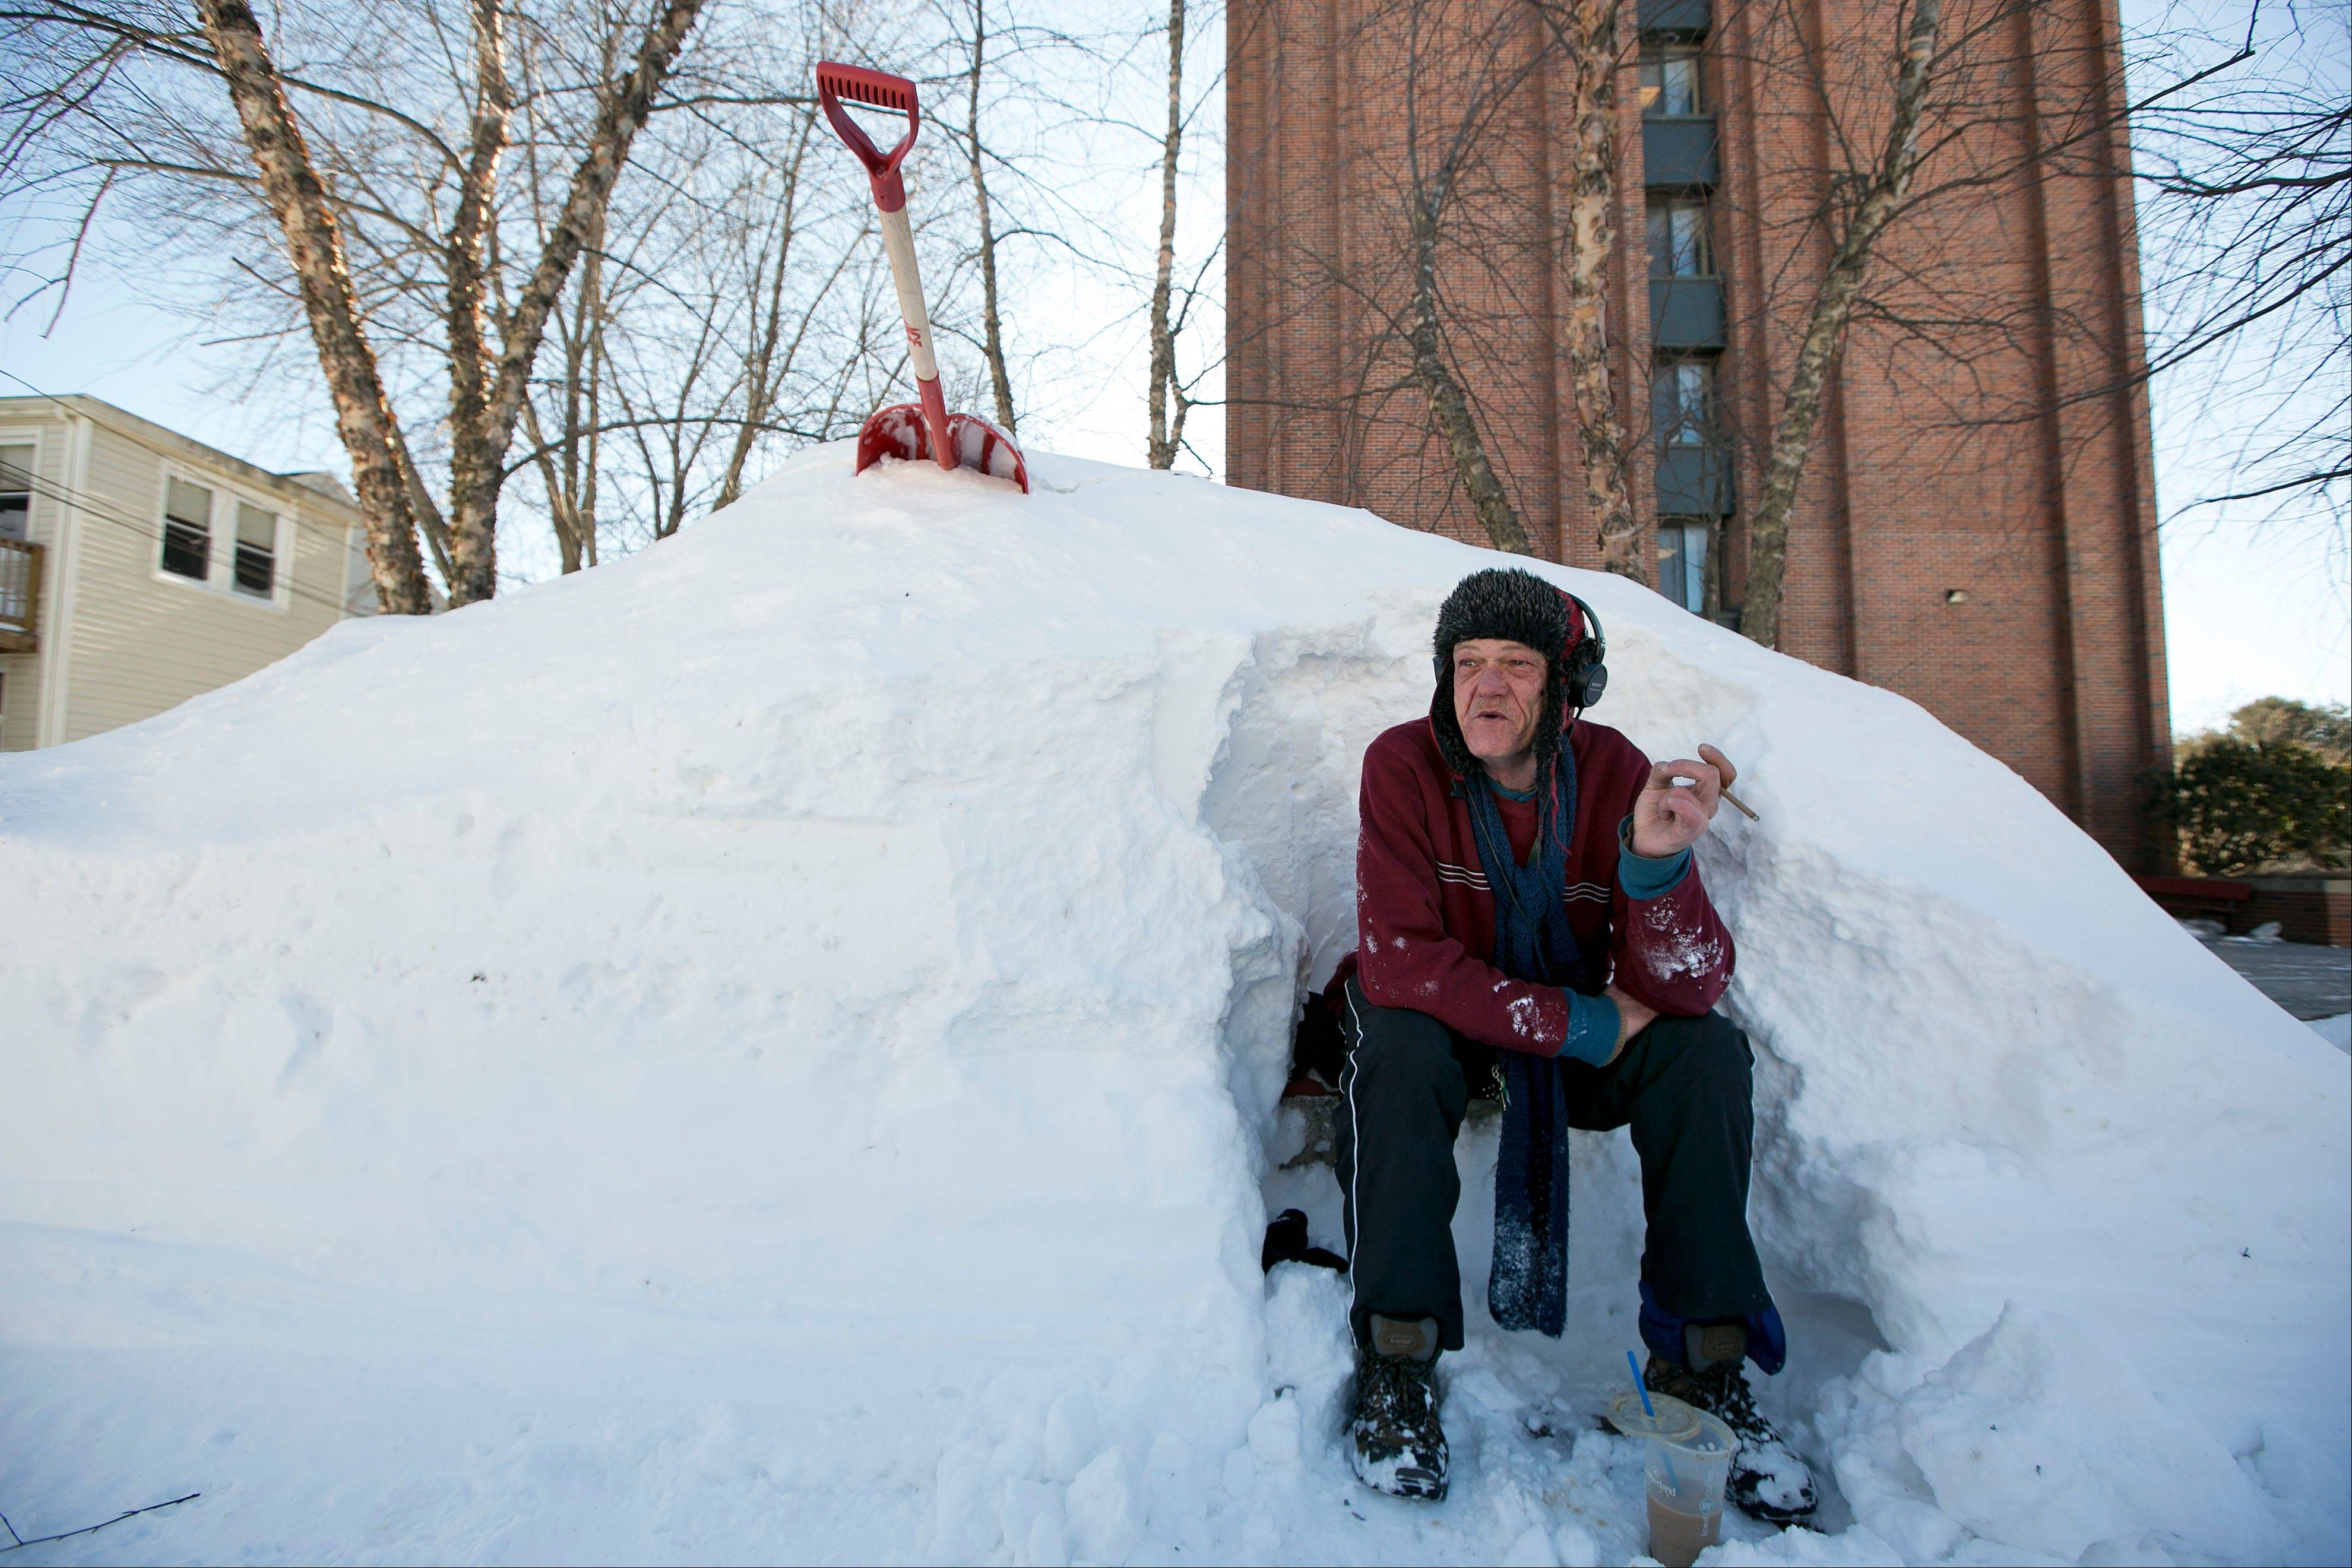 Bert Johnson takes a break while clearing snow from a bus stop bench outside the apartment complex where he lives in Portland, Maine, Sunday.